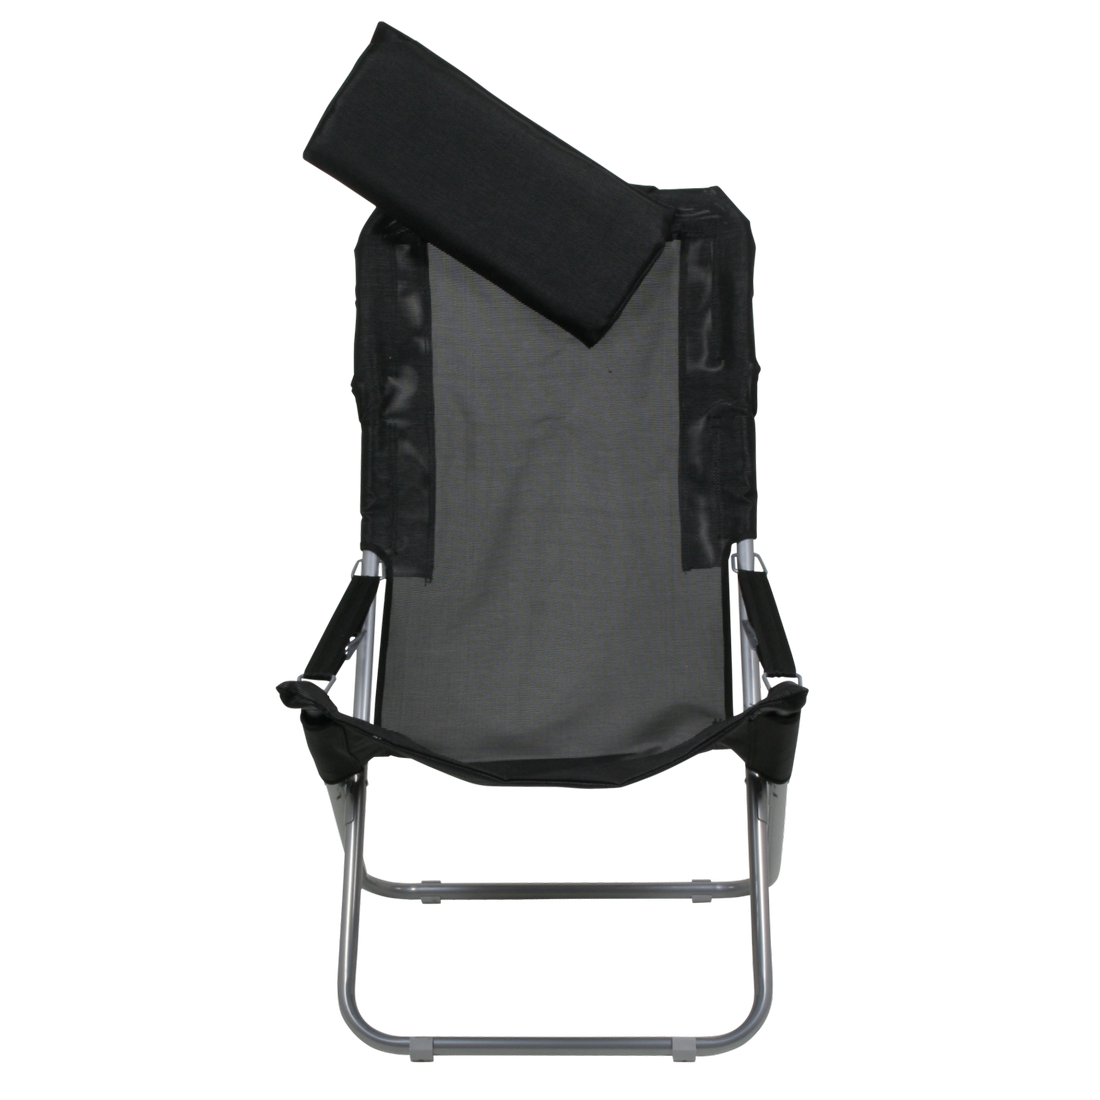 10t maxi chair camping chair relax high back with head